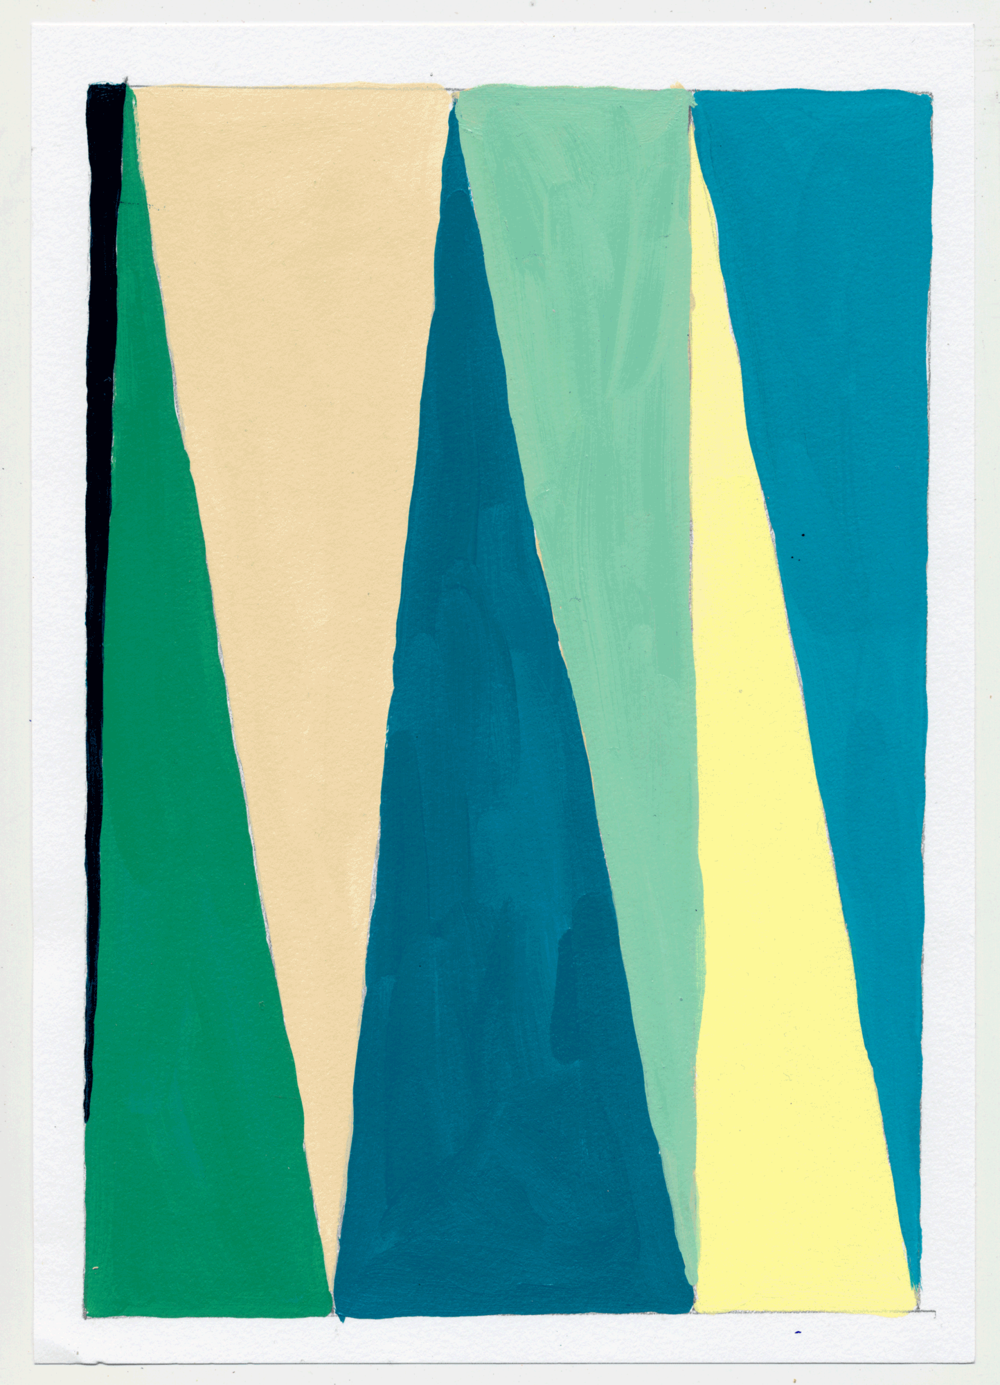 "NY17#25 10"" X 7"", acrylic on paper, 2017 SOLD  again with color studies! 3 sets of 3. using a primary color & its' complement to create subtle variations & muted colors."